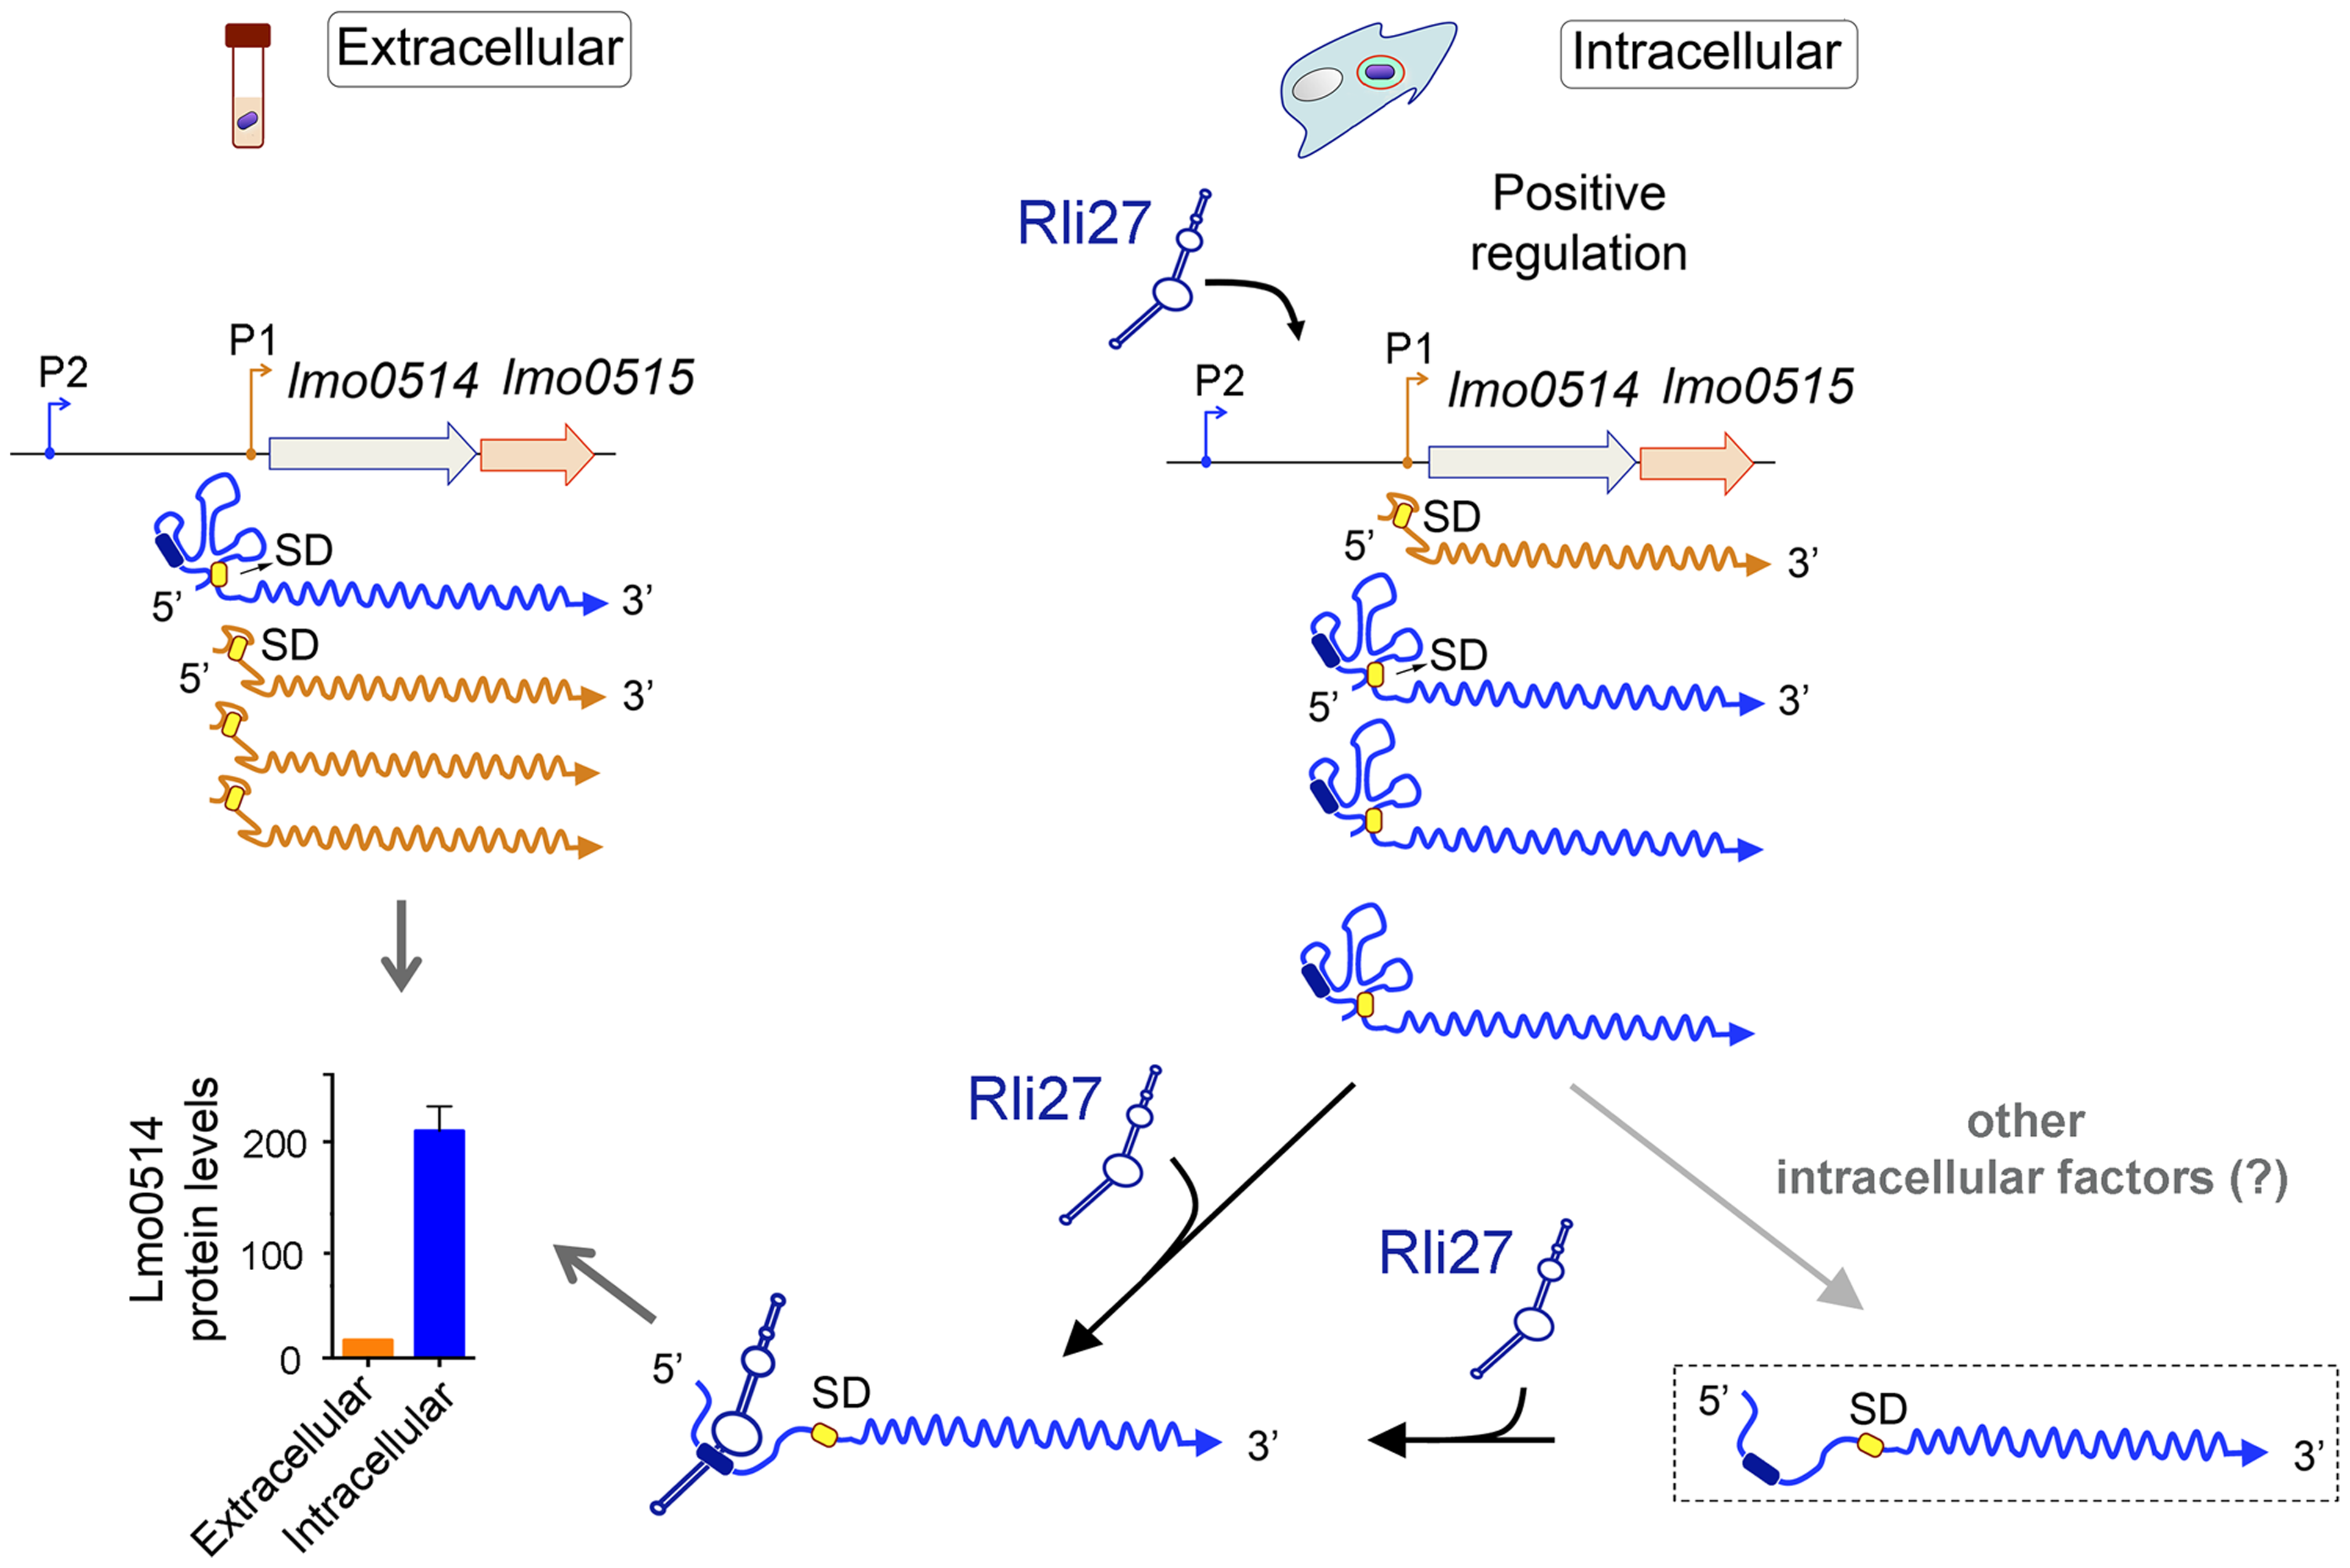 Model of the mechanism by which the <i>L. monocytogenes</i> sRNA Rli27 could positively regulate production of the cell wall protein Lmo0514 inside eukaryotic cells.